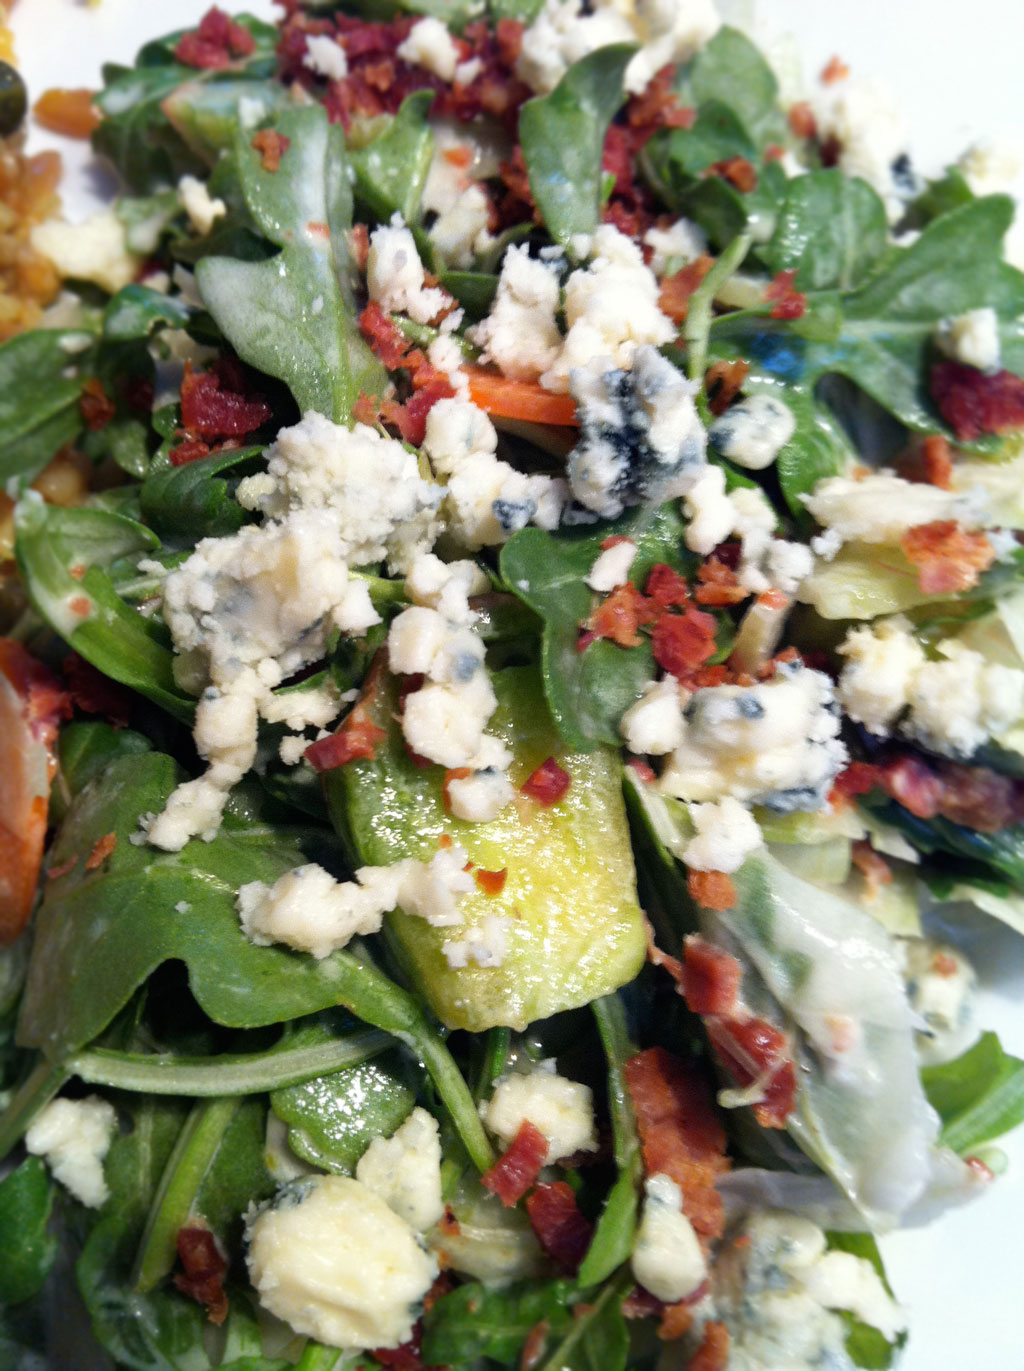 Maytag Blue and arugula salad